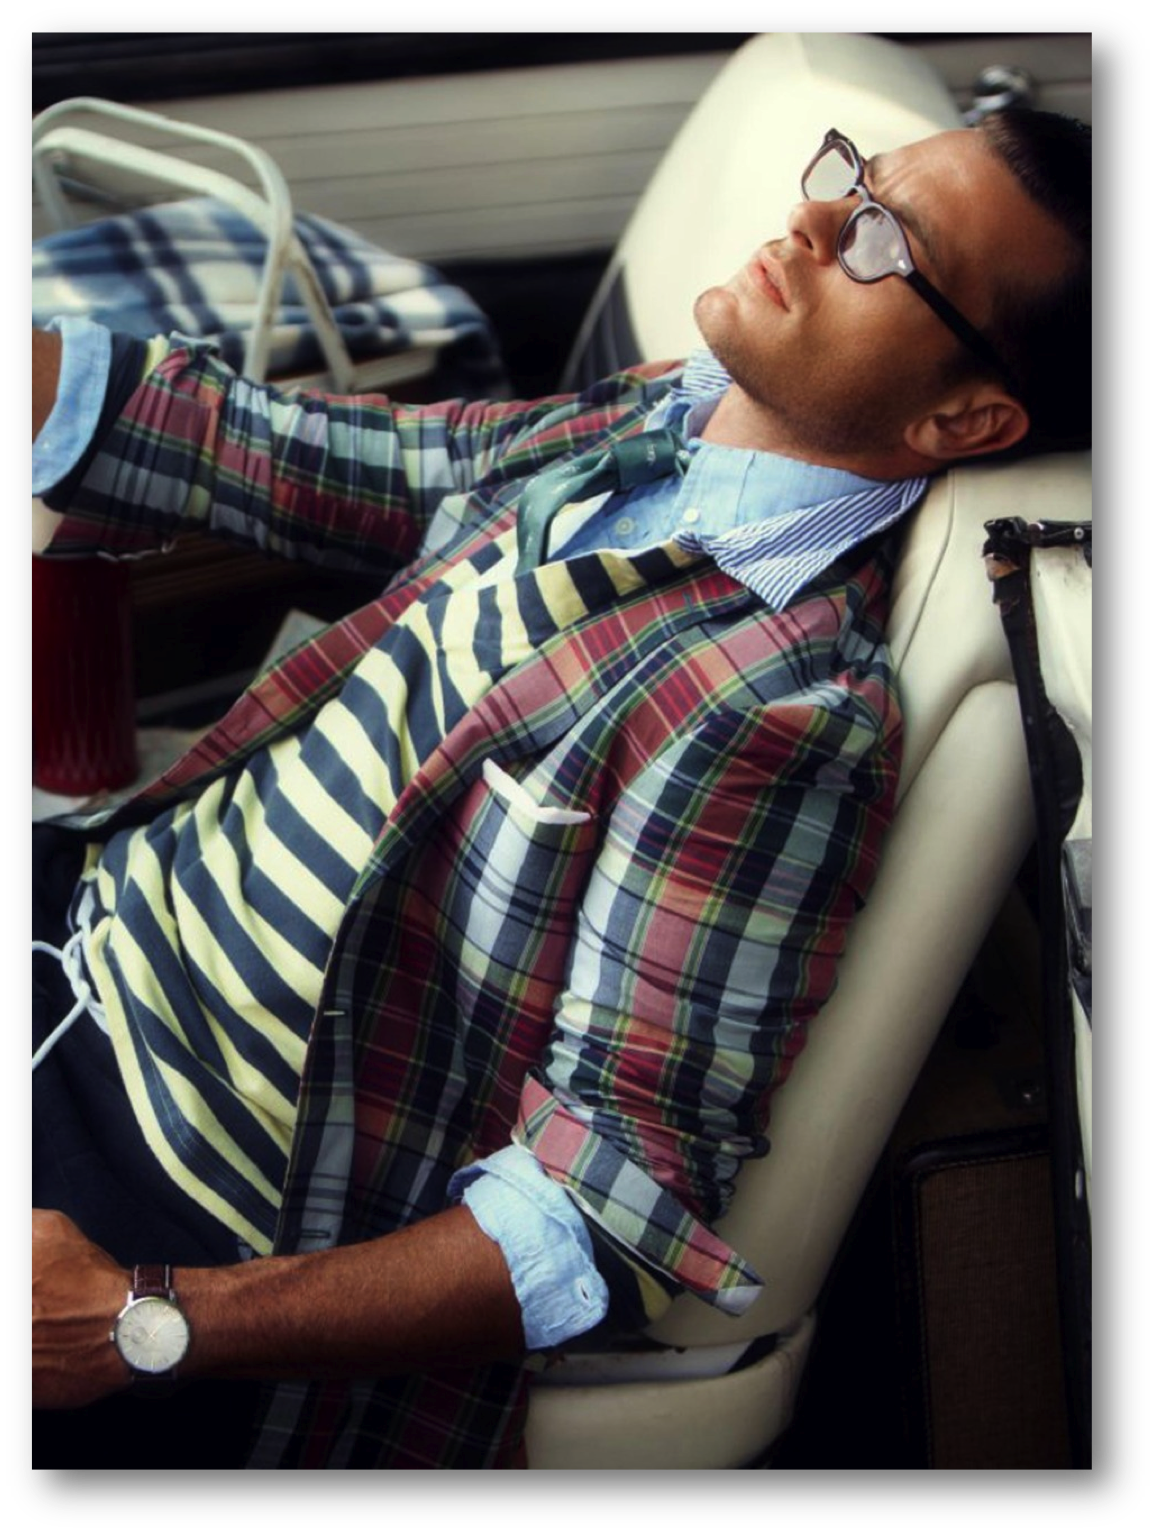 Preppy-stripes-and-checkered-shirts_preppy-glasses_preppy-menswear-trends_collegiate-fashion-style-trends-2014_what-is-collegiate_smart-preppy-styles-for-men